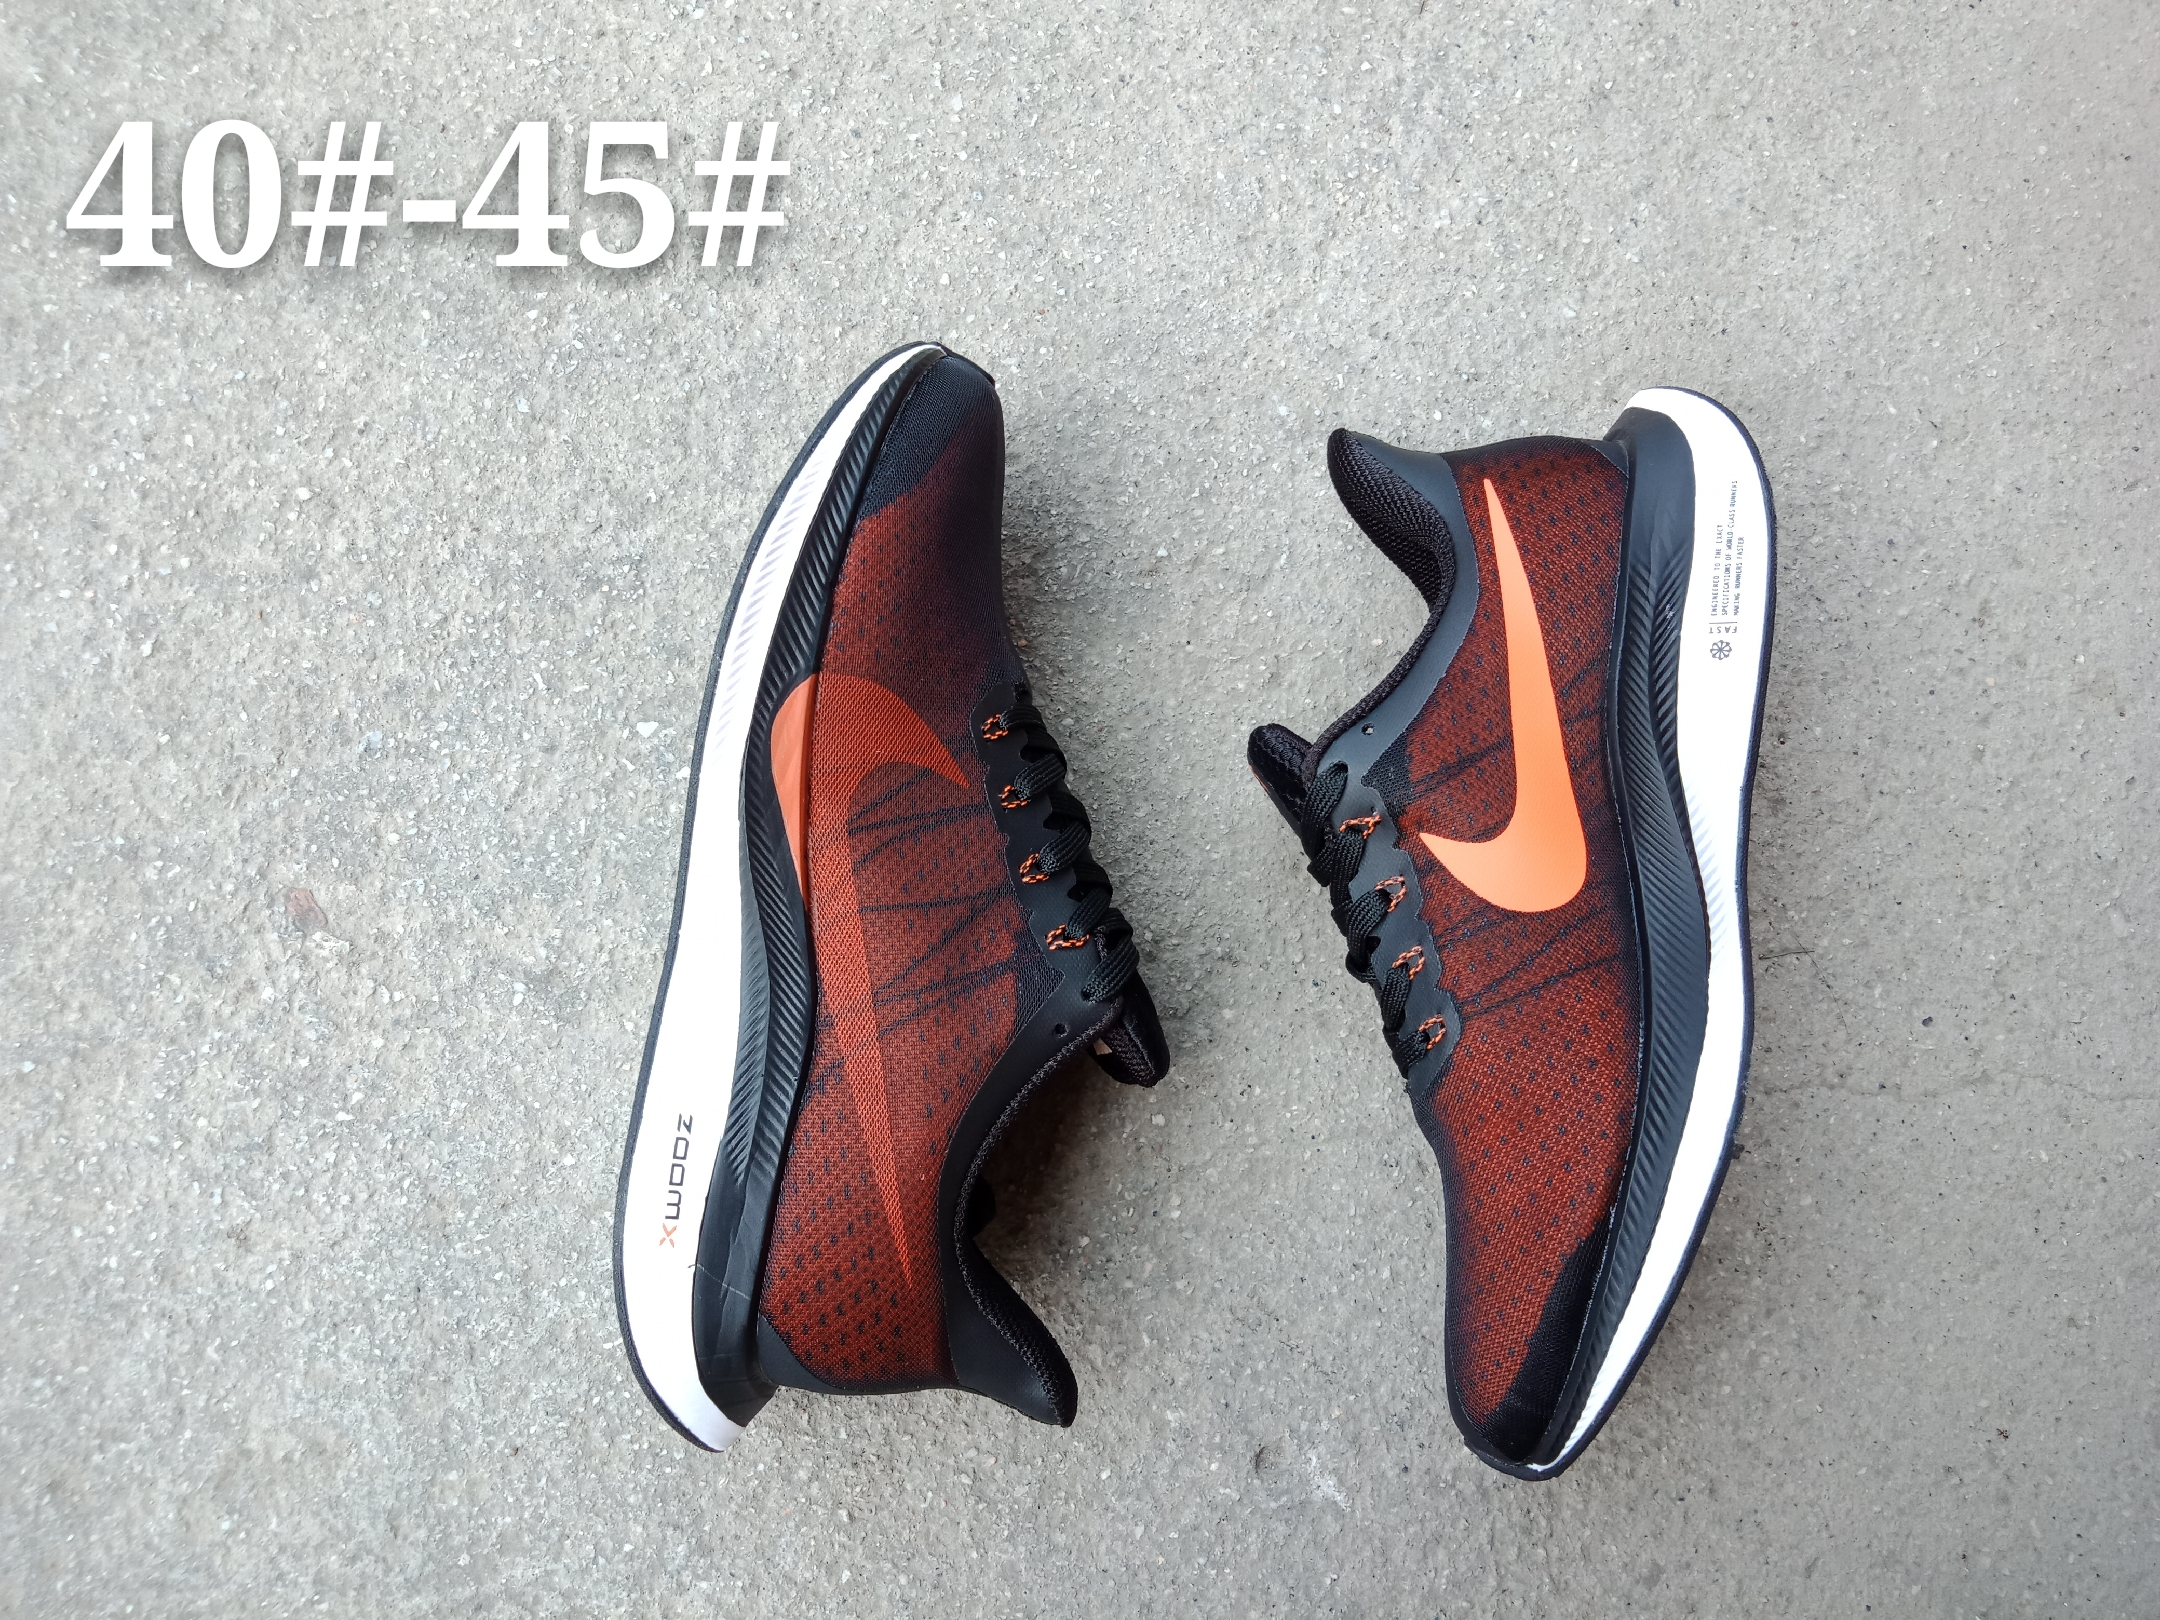 Nike Air Zoom Pegasus 35X Orange Black Shoes